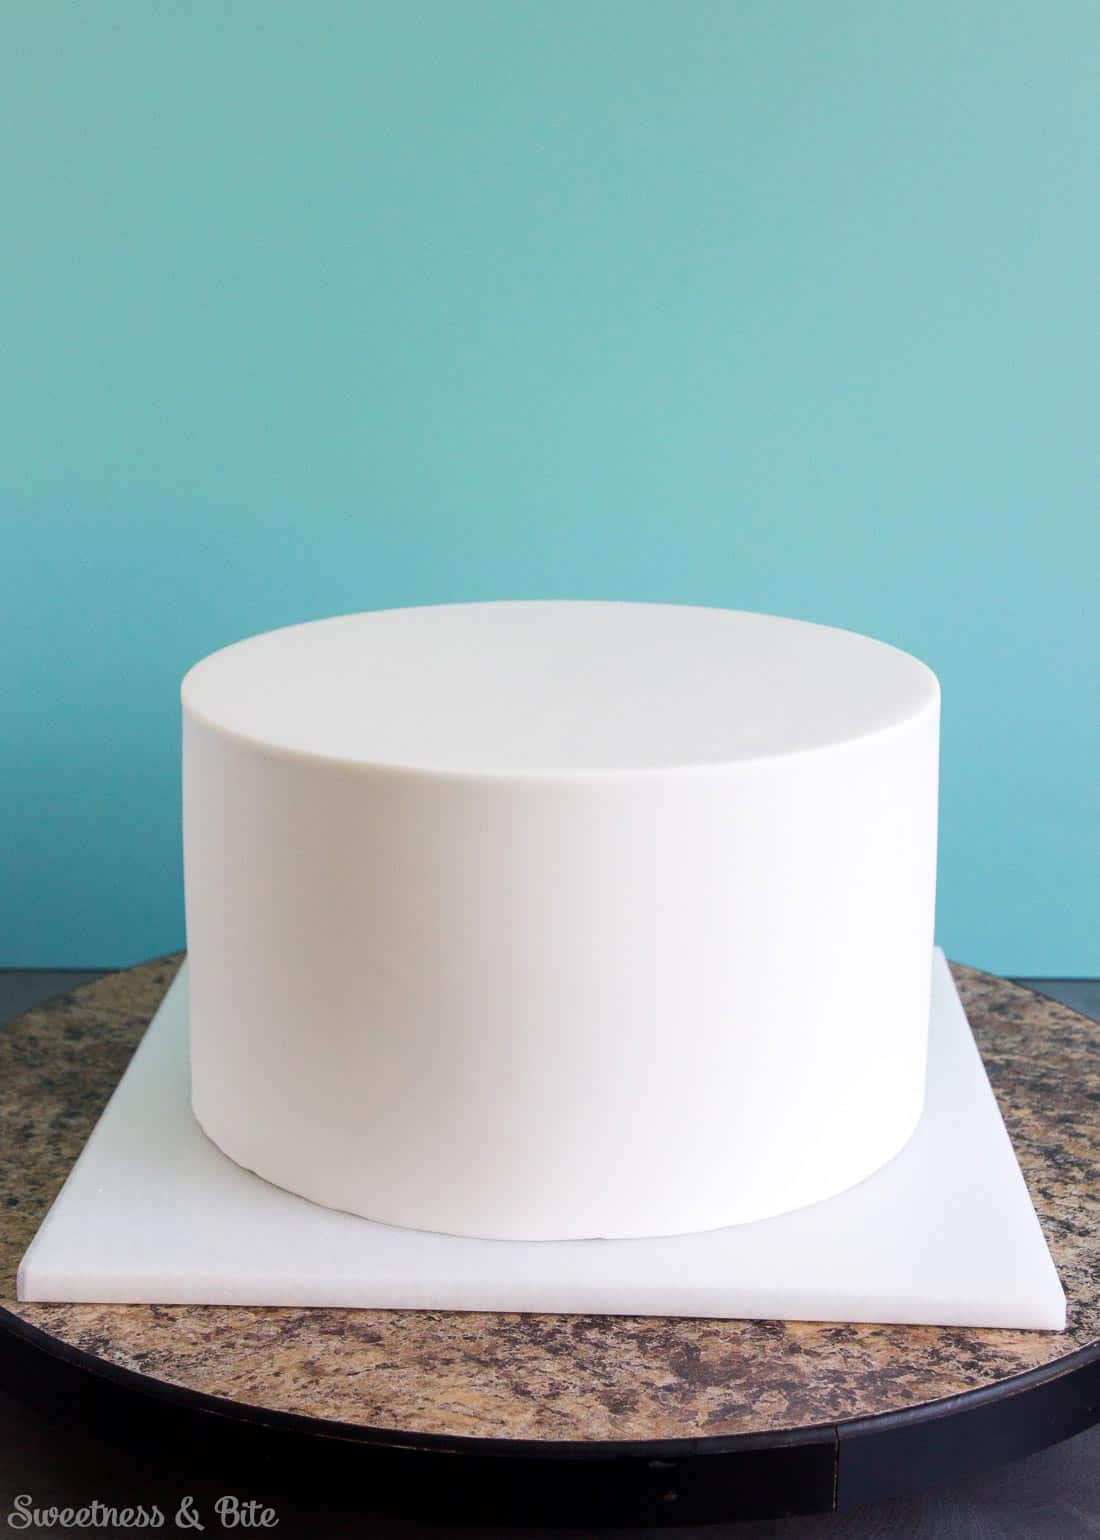 Sprinkle Cake Tutorial A Step By Step Guide To Applying Sprinkles To A Fondant Covered